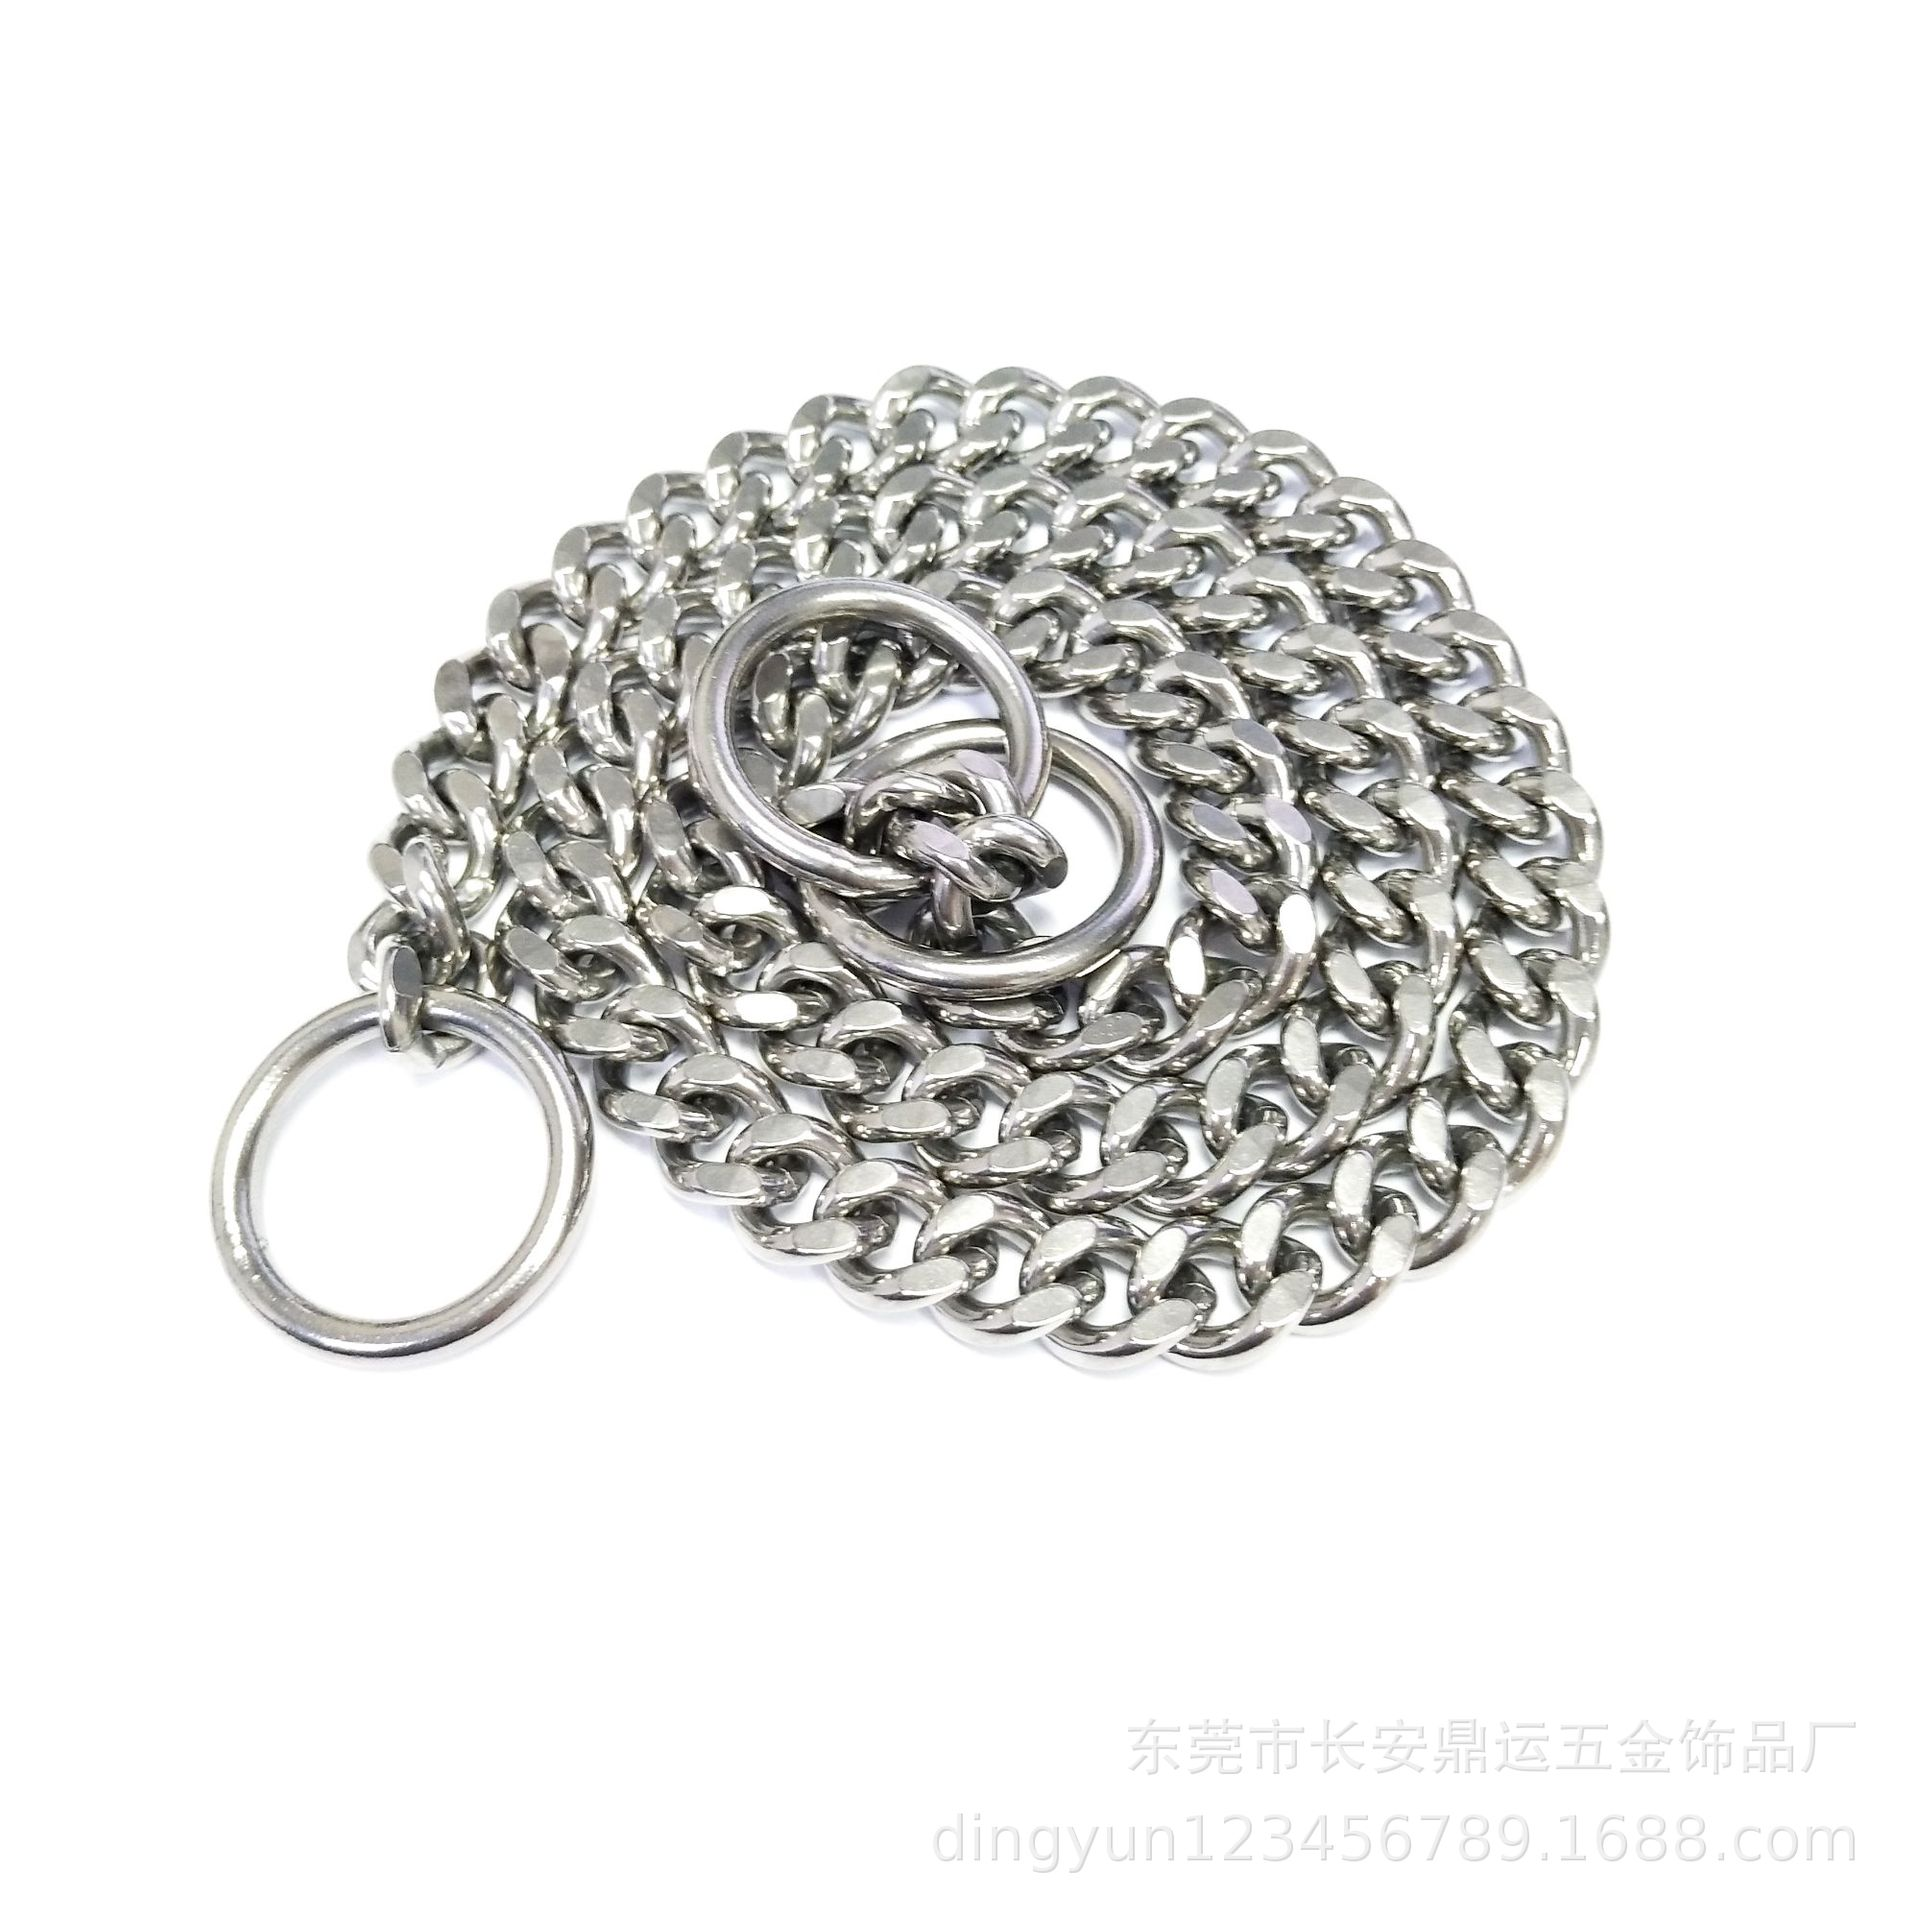 Hot Selling Stainless Steel Dog Chain 11mm Wide Two-sided Grinding Pet Supplies Dog Collar Drag Chain